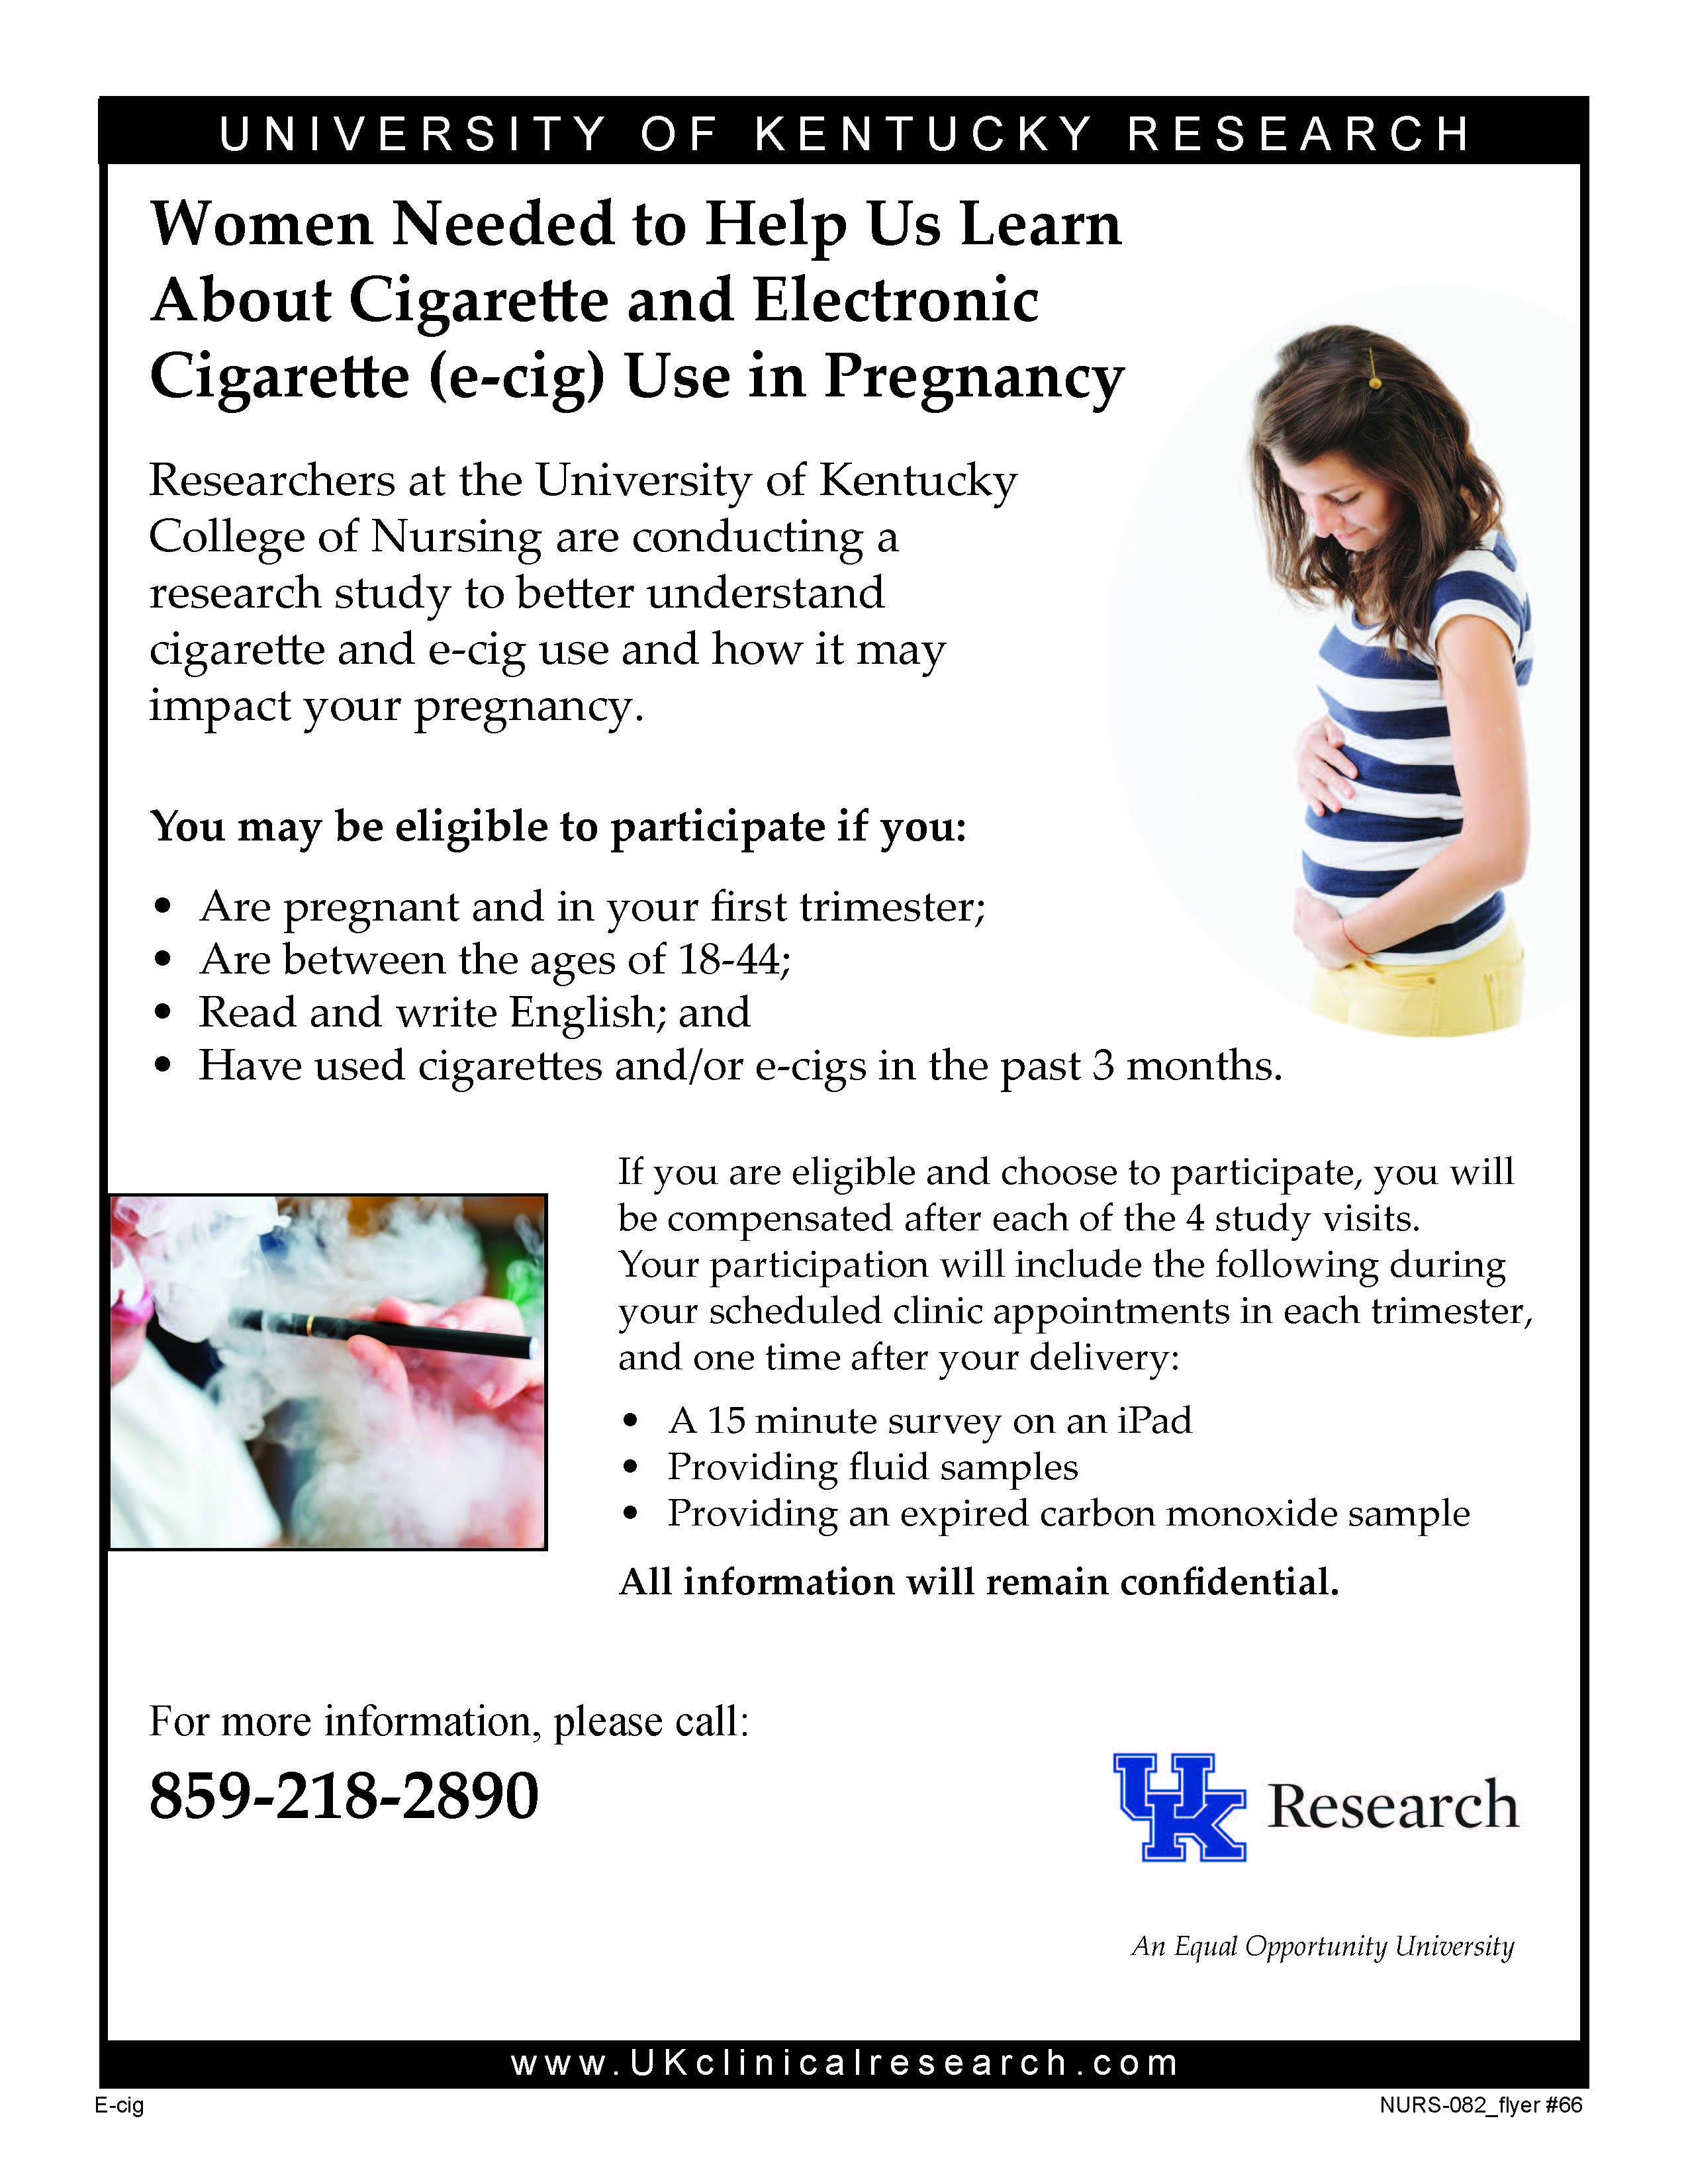 Women needed to help us learn about cigarette and electronic